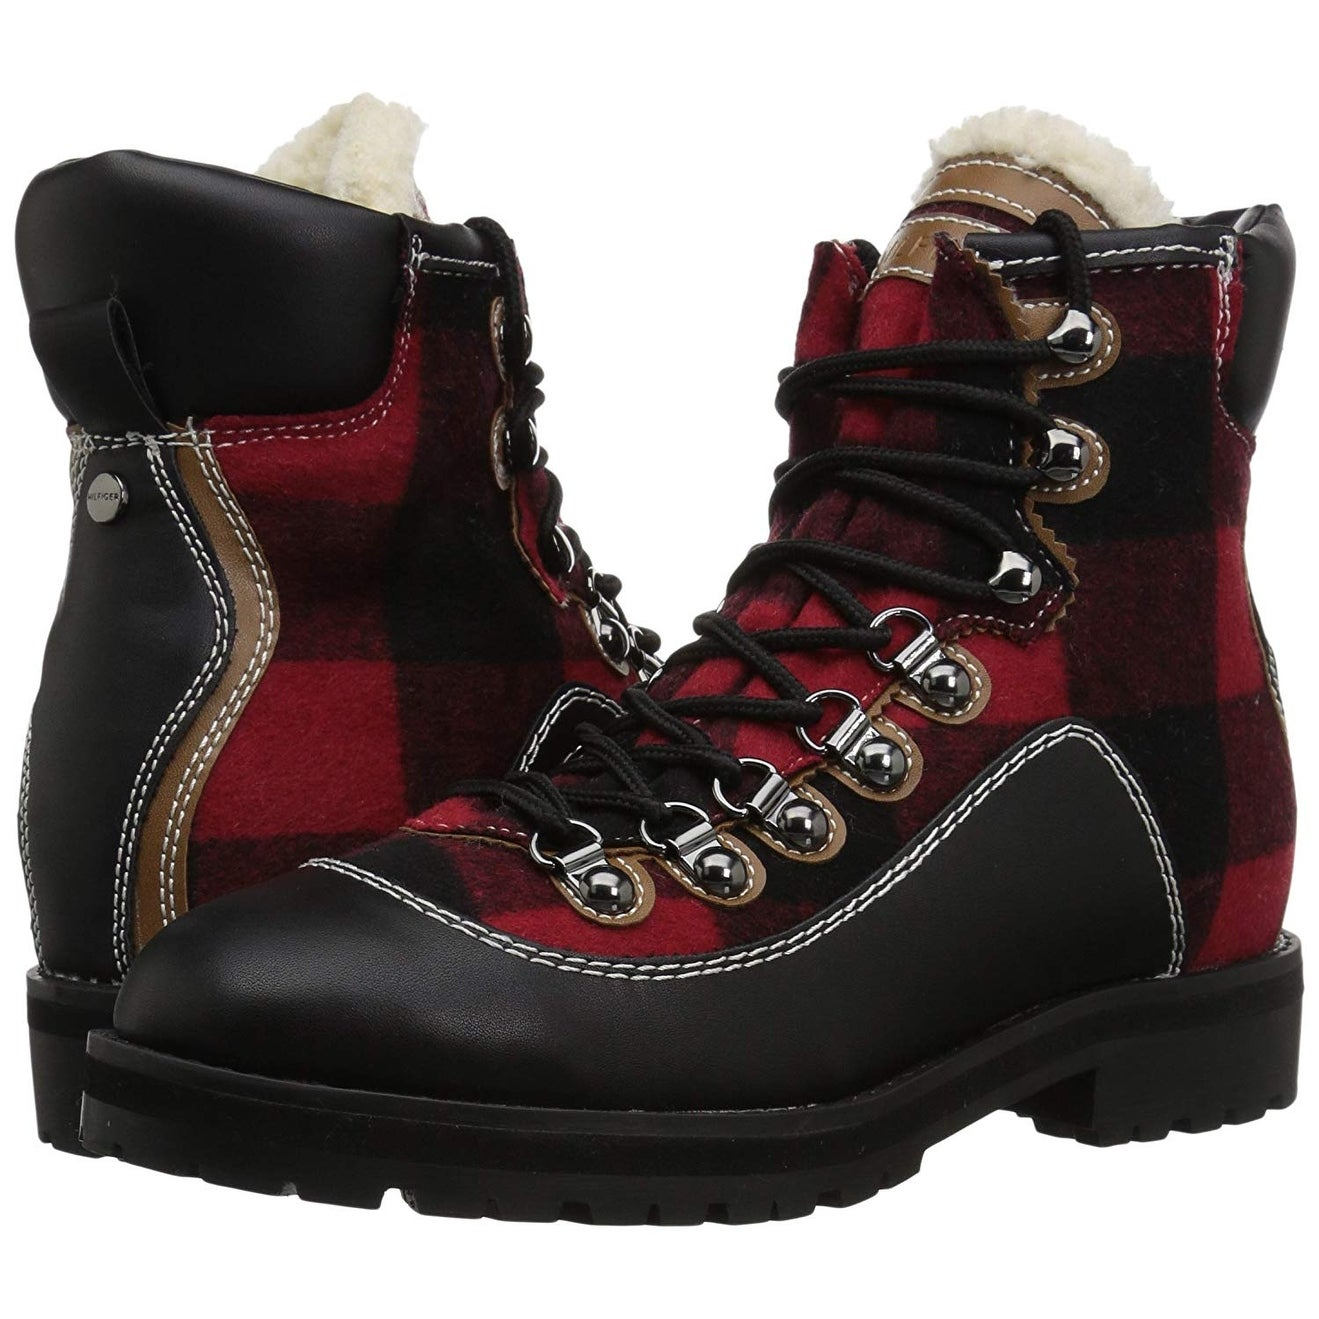 24b4230111ab92 Buy Tommy Hilfiger Women s Boots Online at Overstock